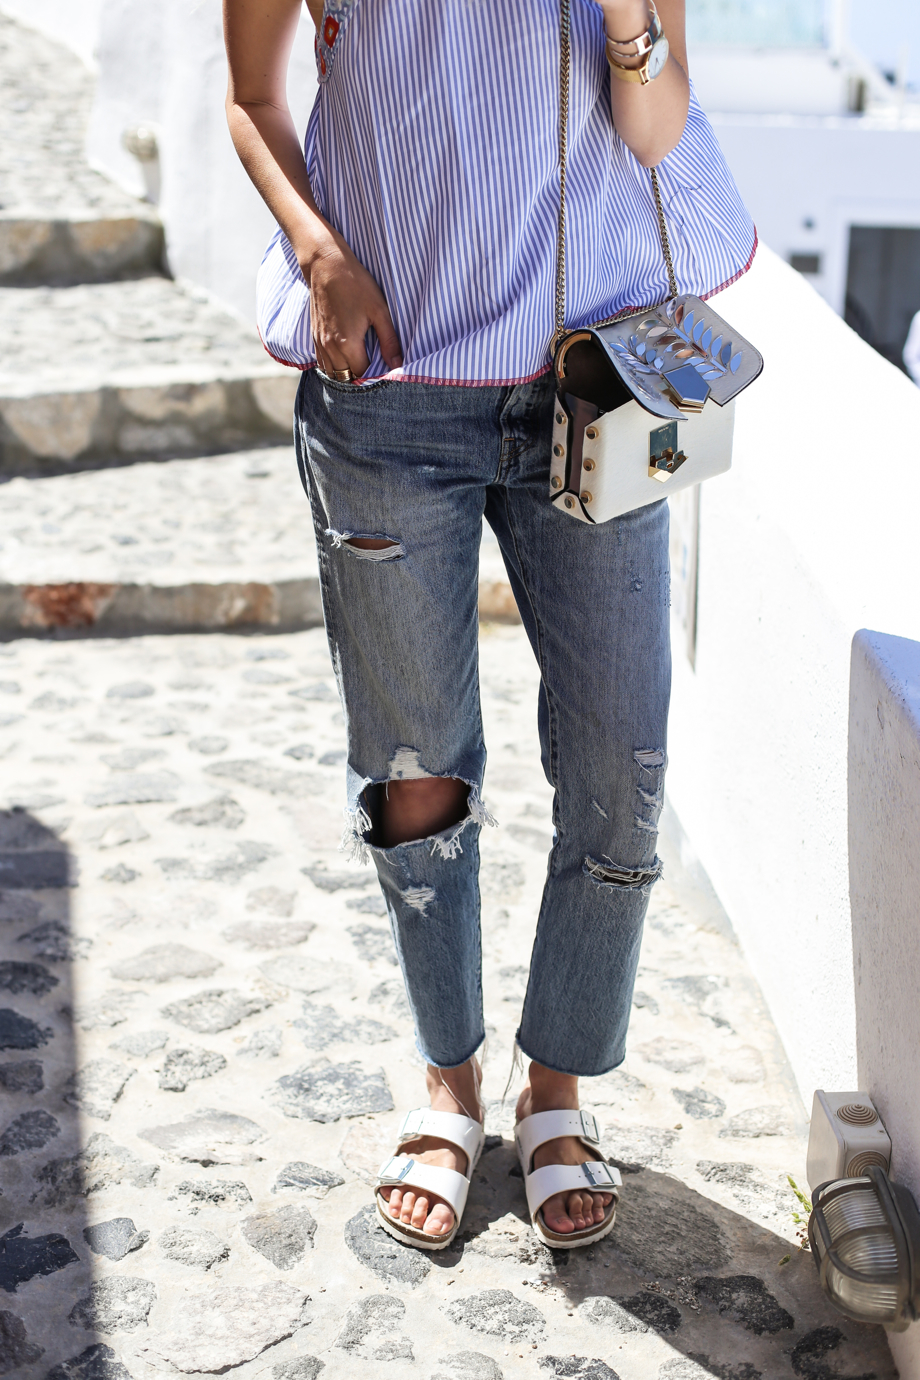 Stripes_Fringes_Levis_ToryBurch_ohhcouture_Santorini03